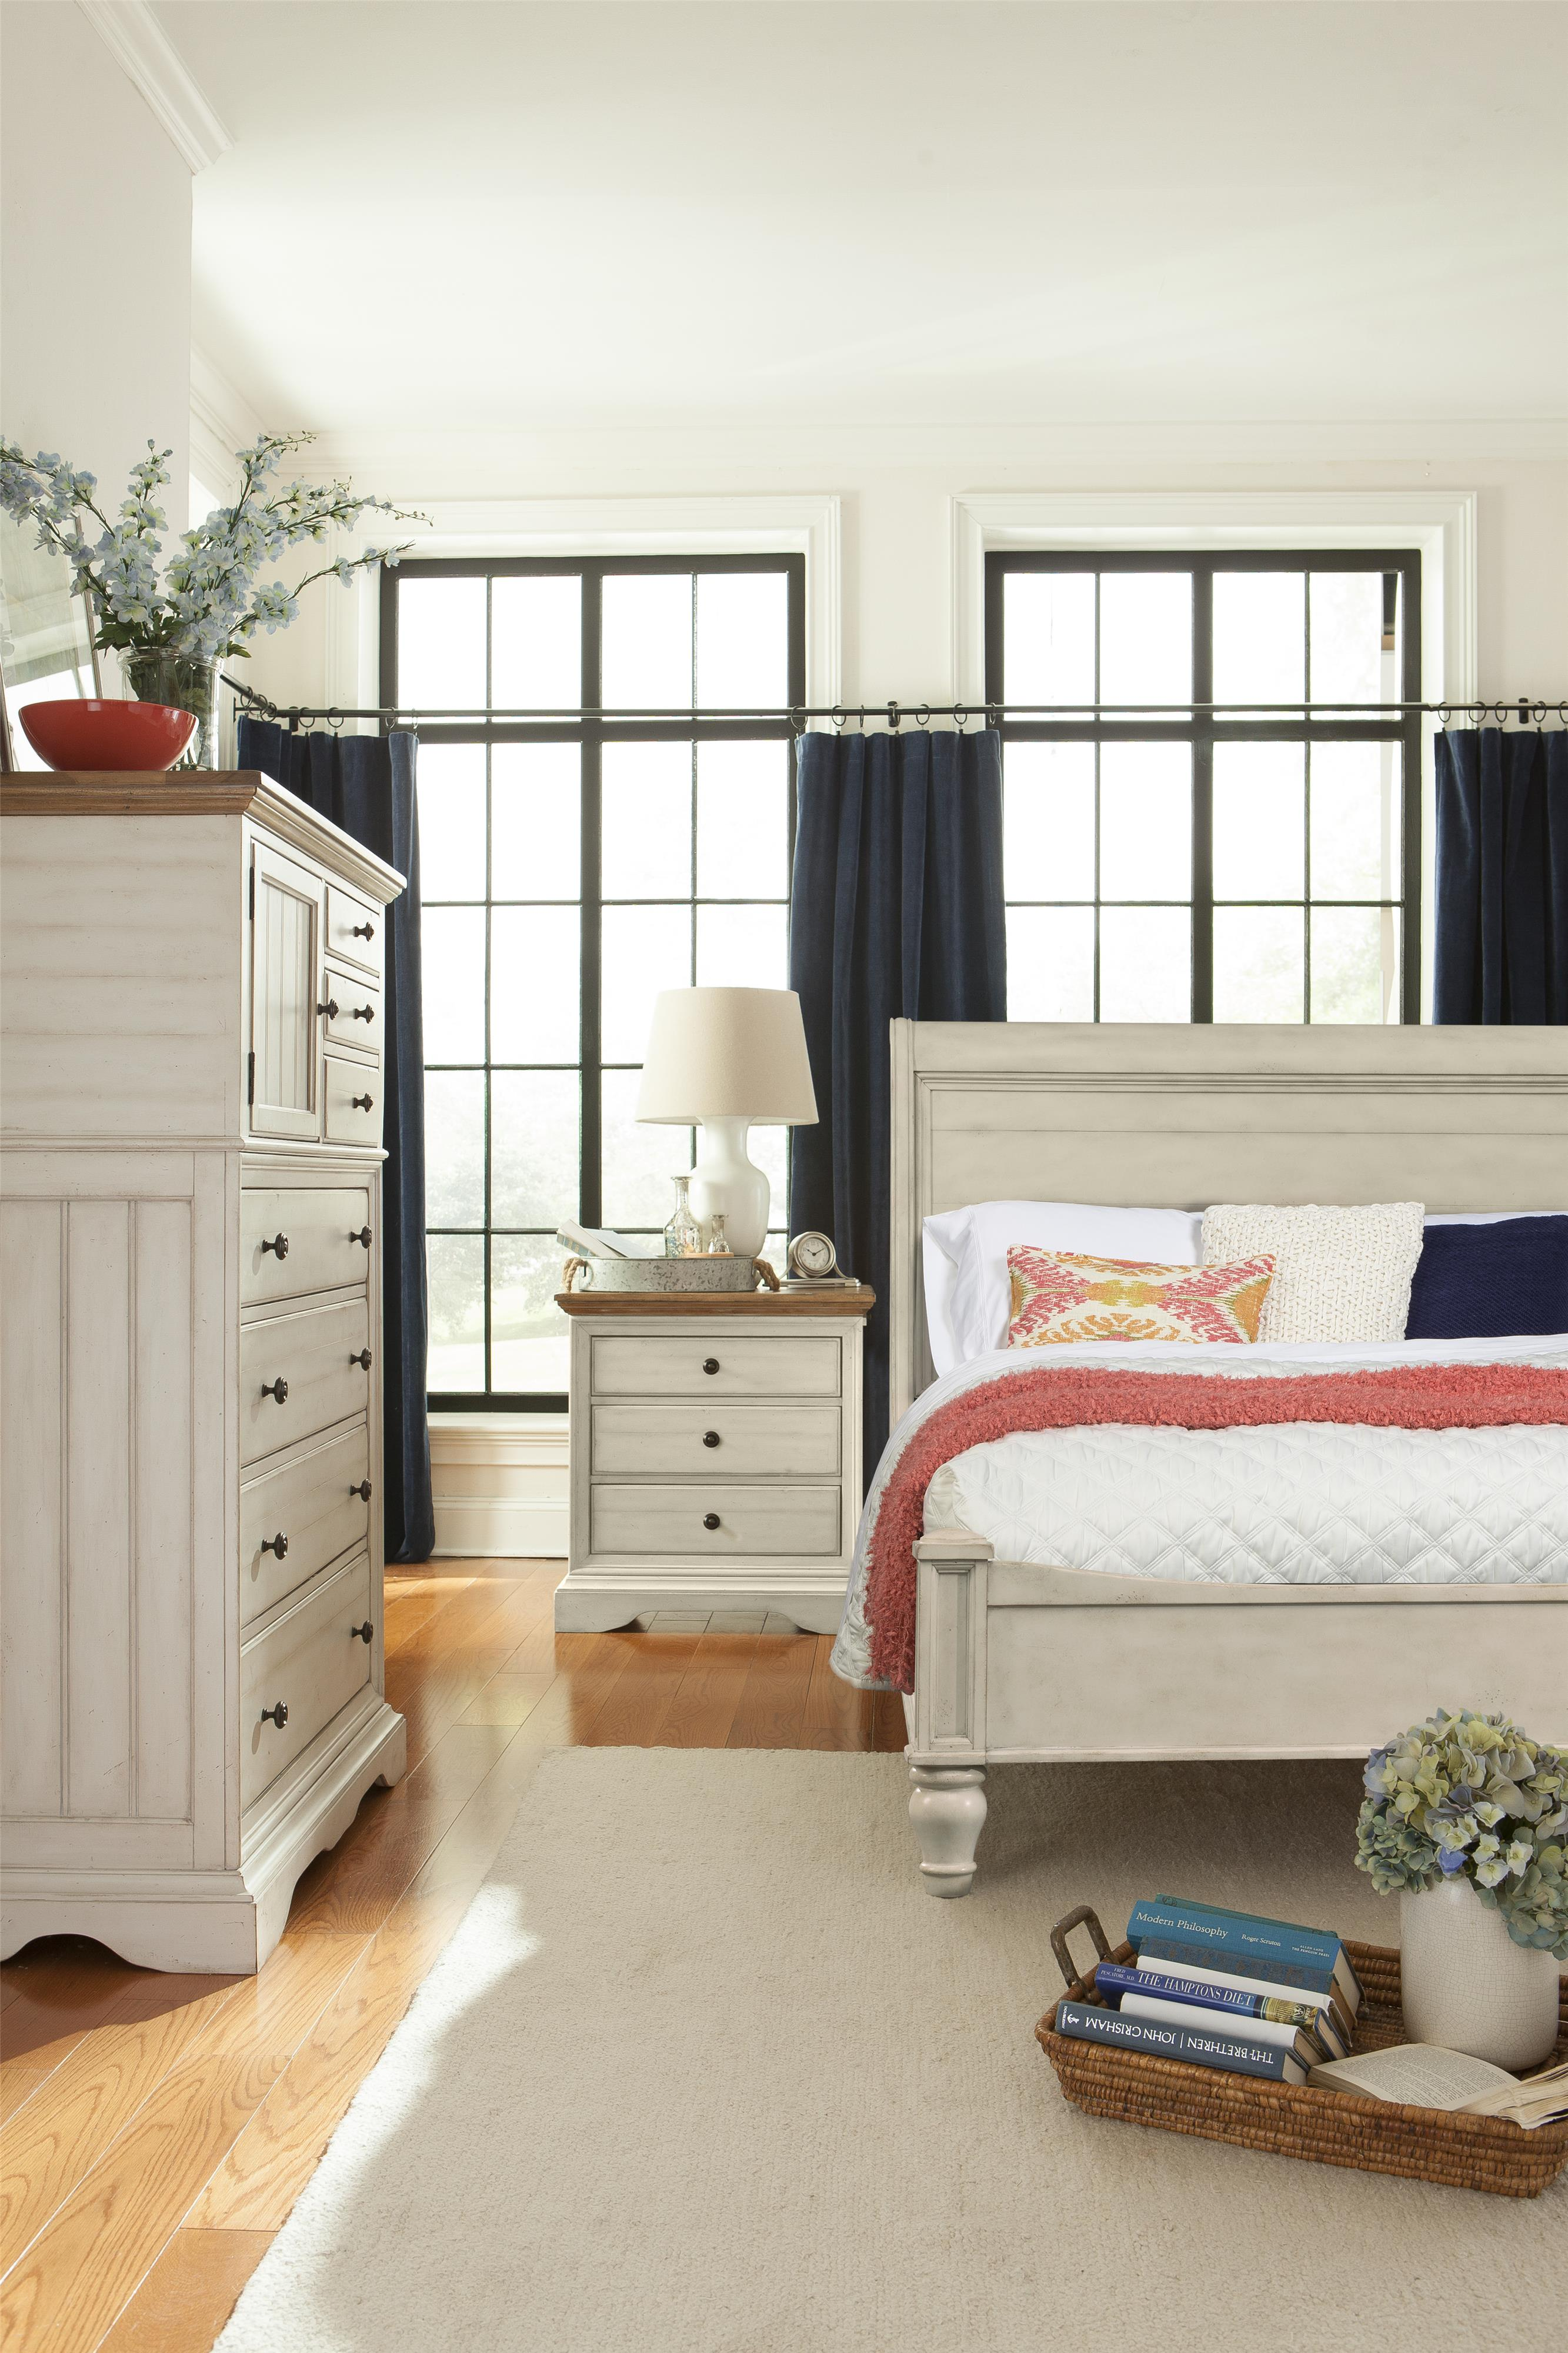 Cresent Fine Furniture Cottage Queen Bedroom Group - Item Number: 201 Q Bedroom Group 3